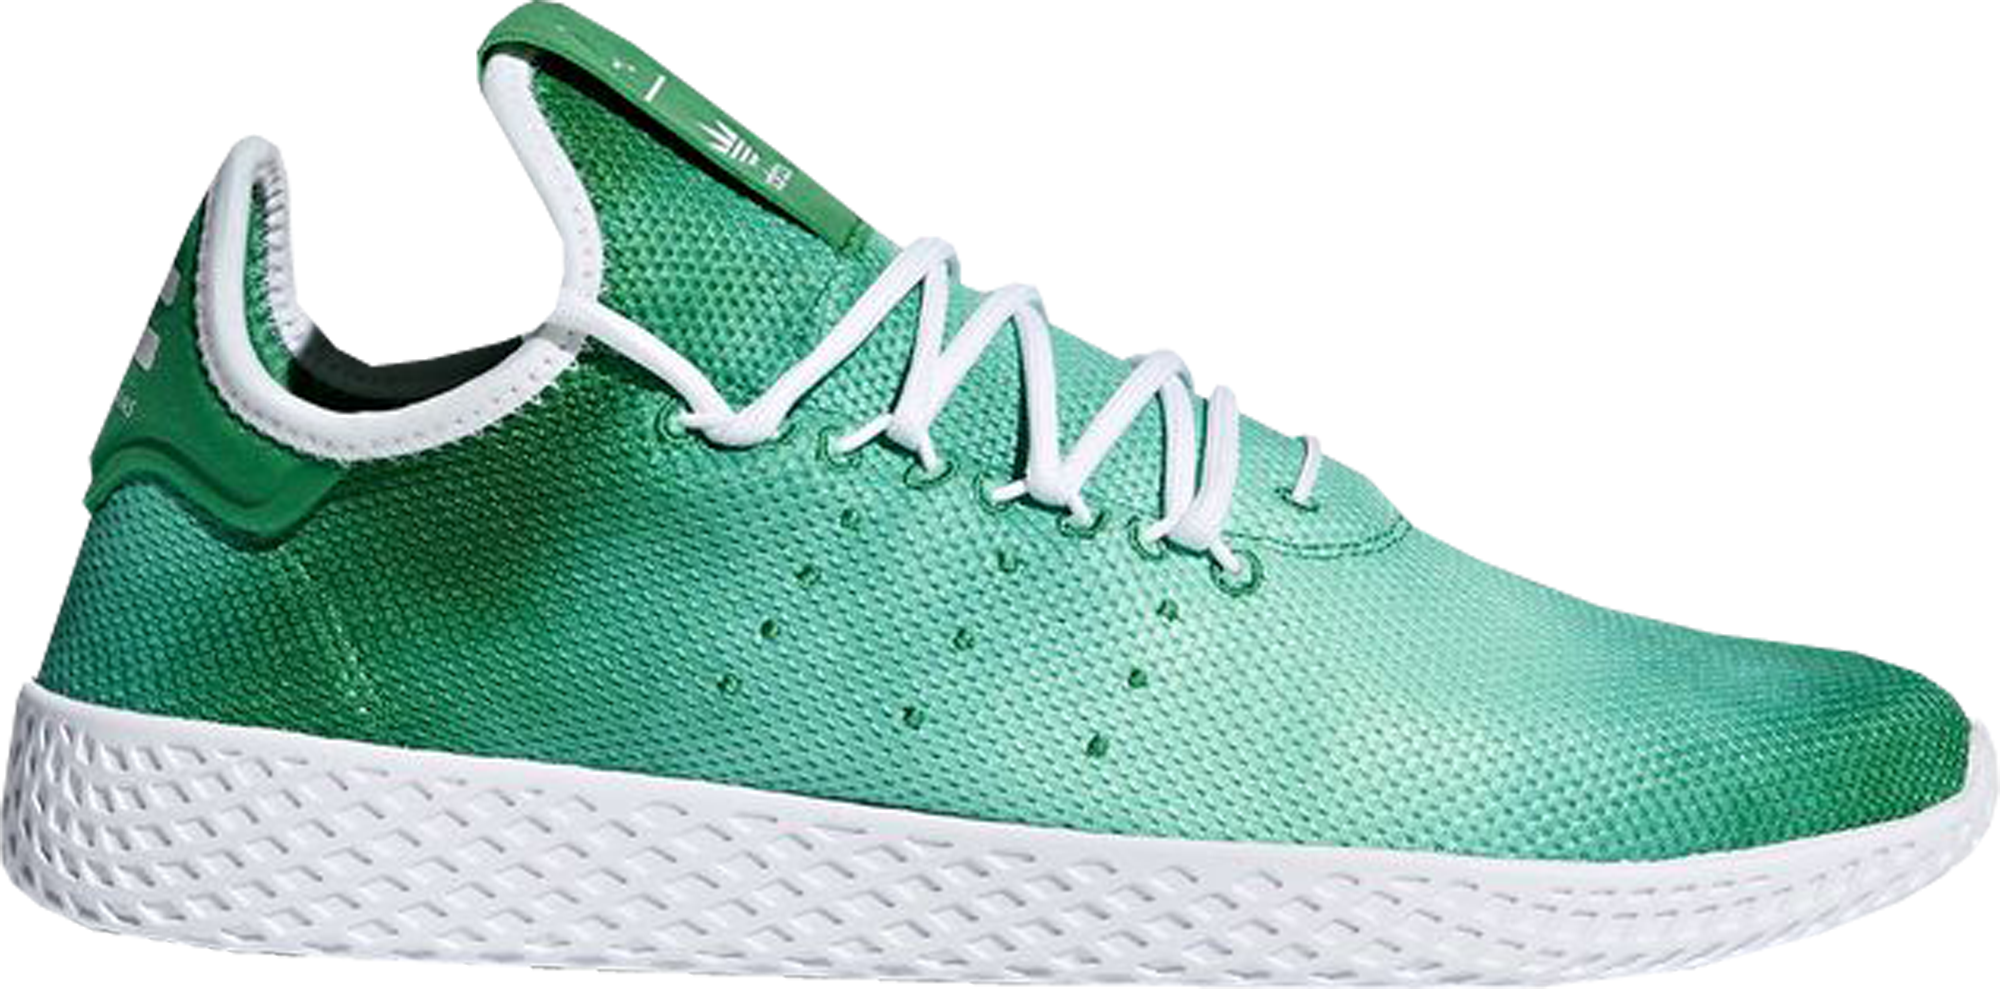 Pharrell X Adidas Tennis Hu Drop Bright Green